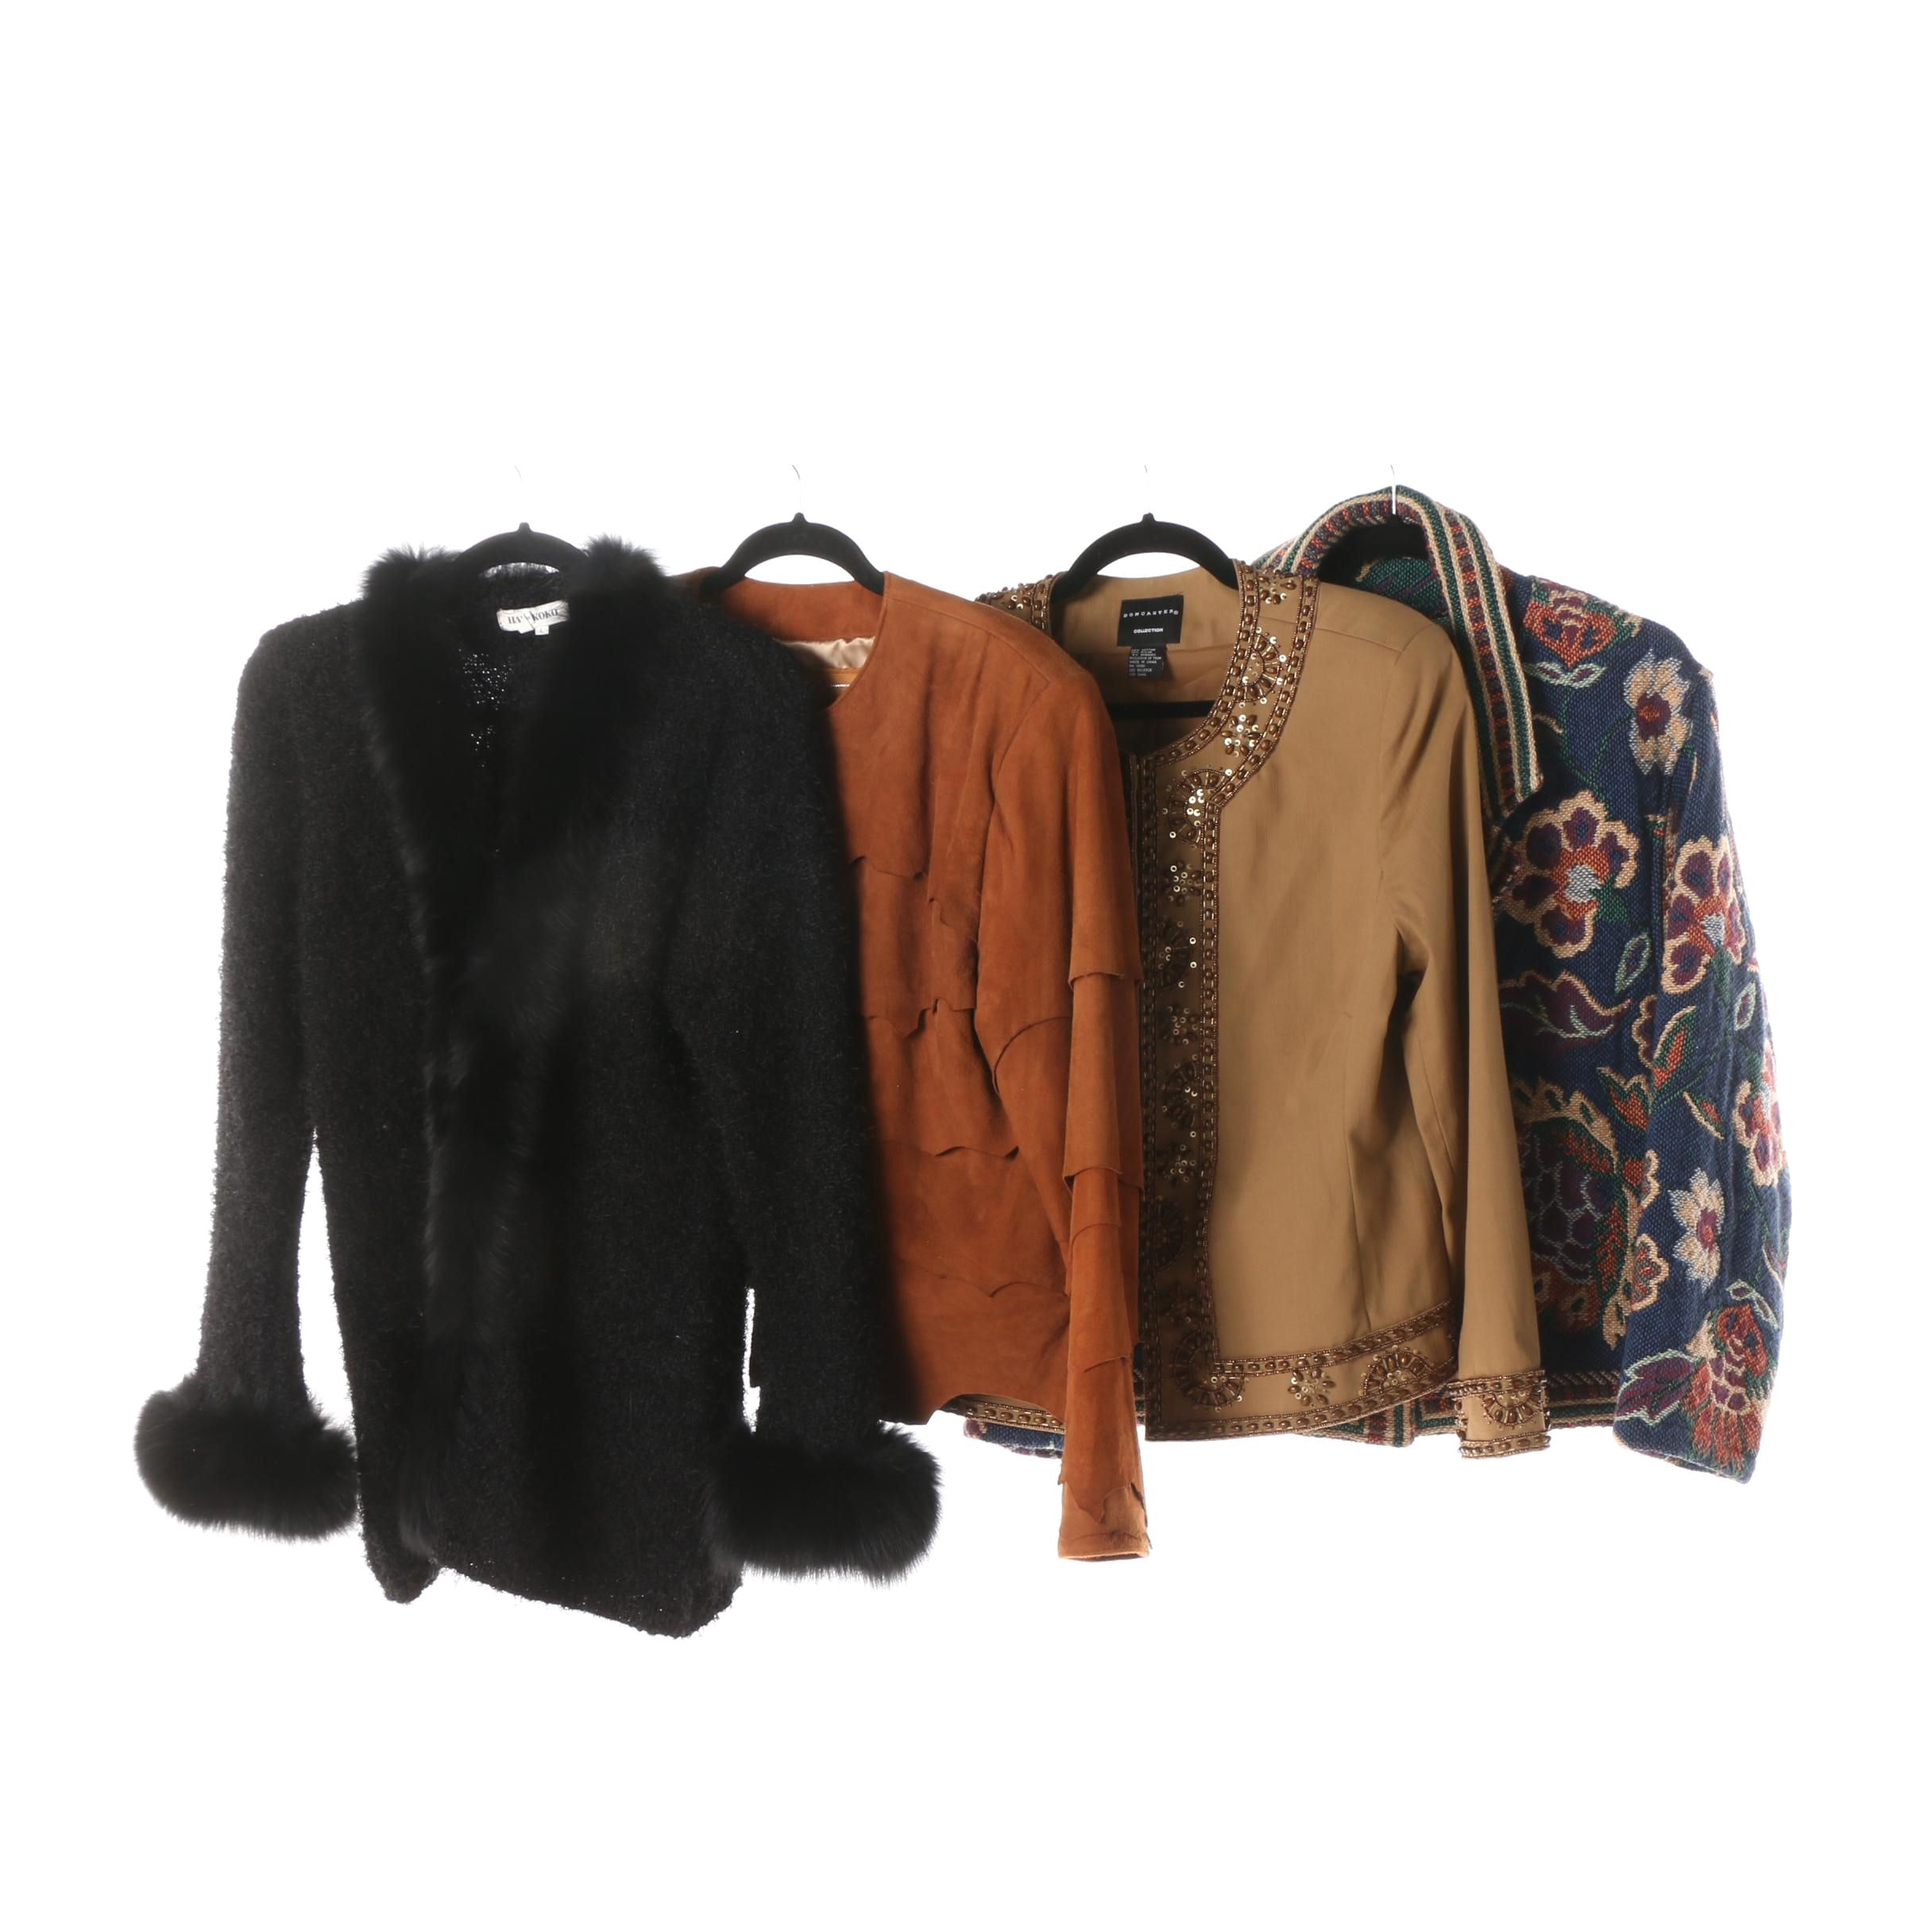 Women's Jackets and Halukoko Cardigan with Fox Fur Trim